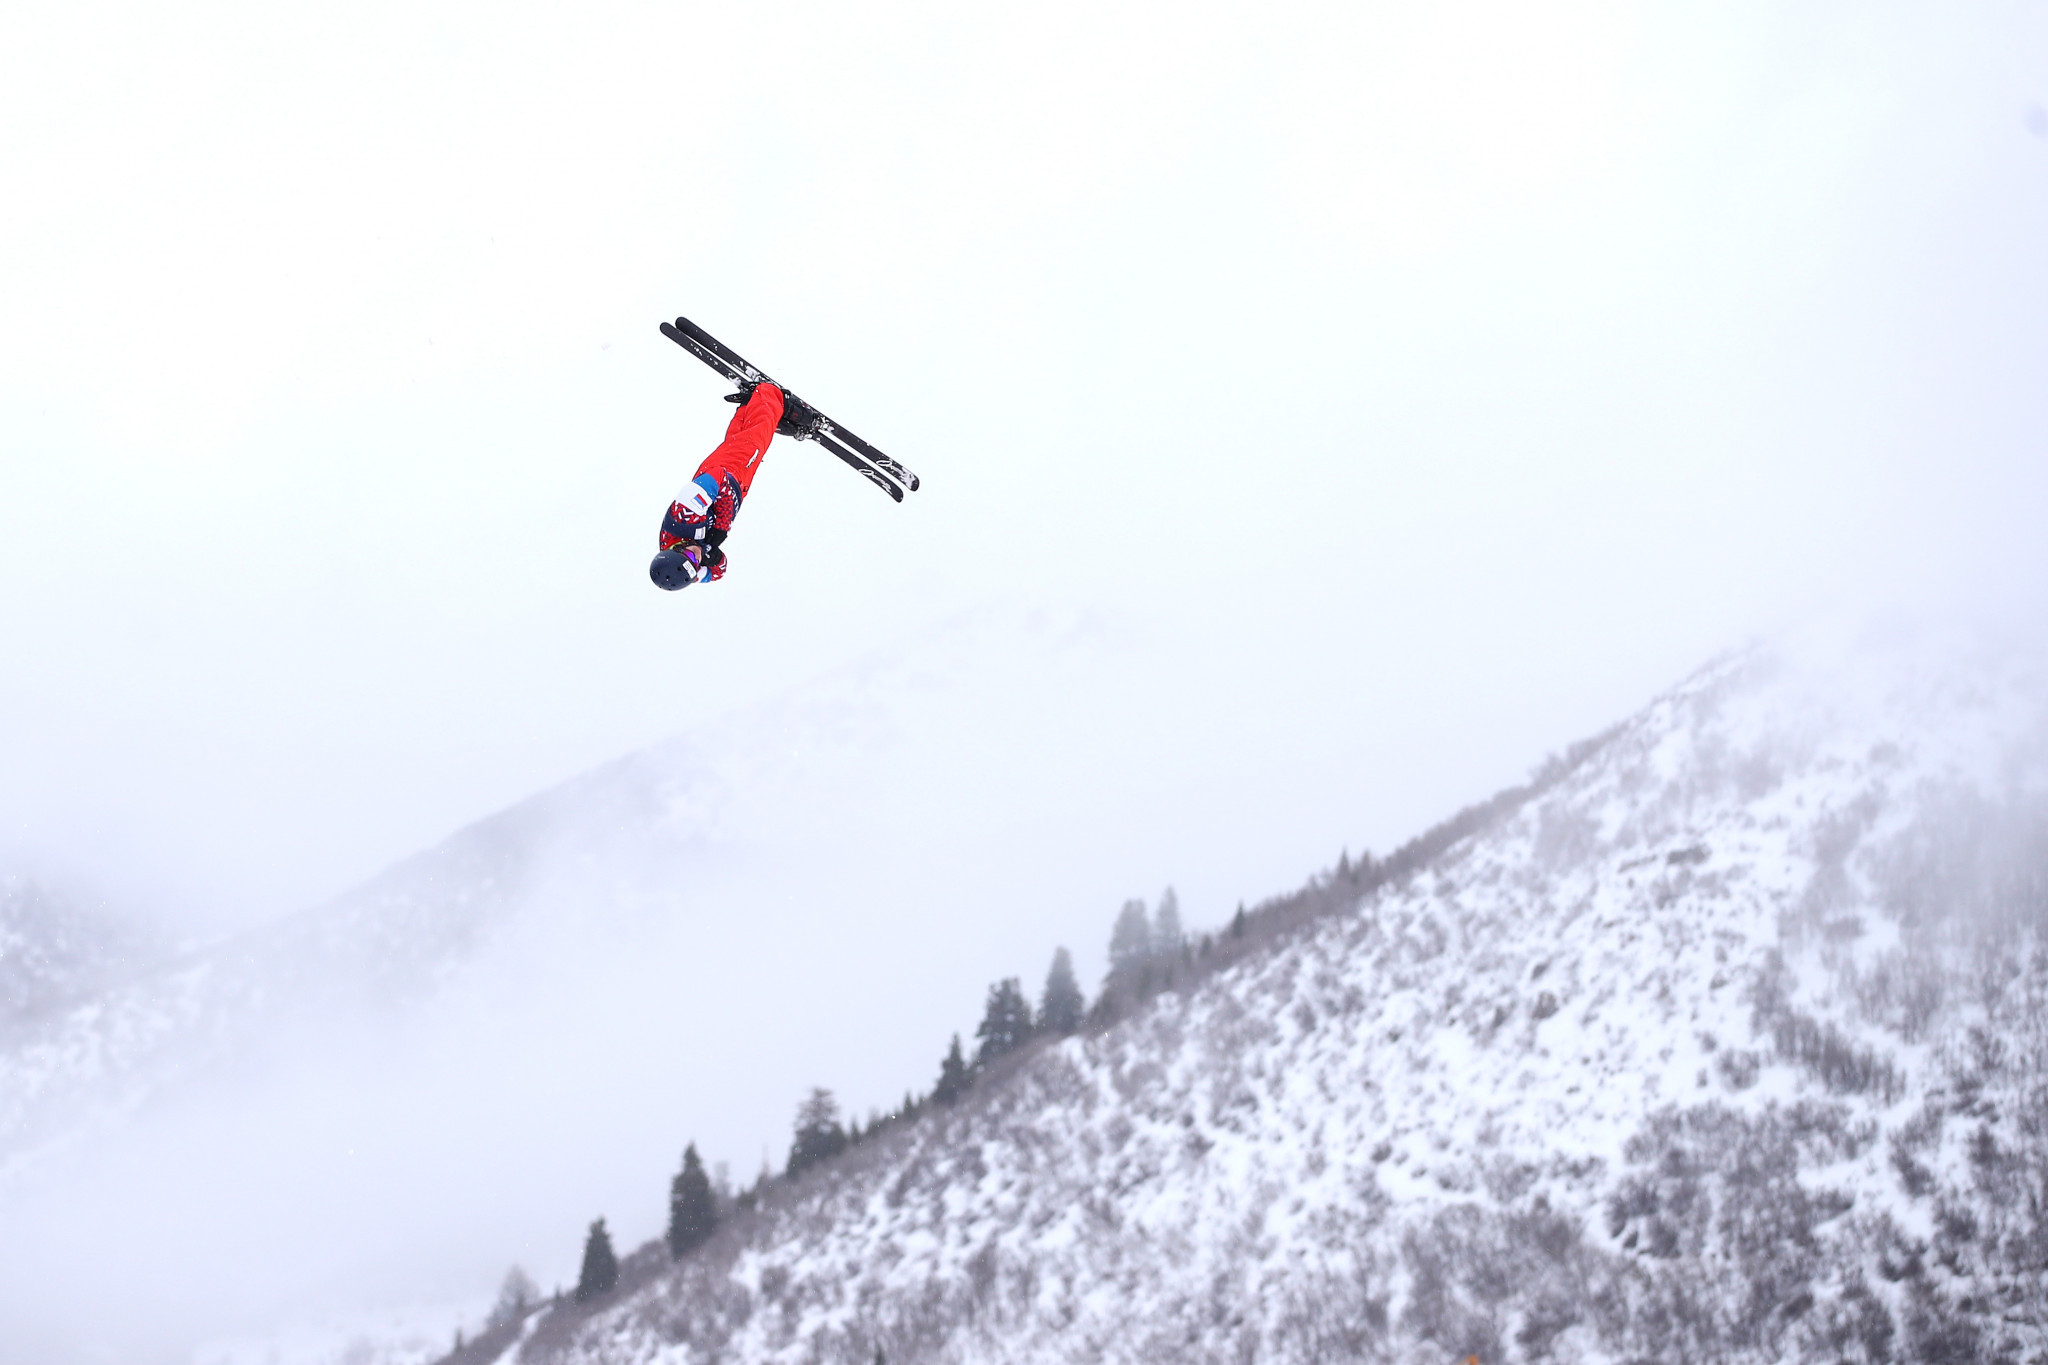 Burov targets fifth successive win at FIS Aerials World Cup in Minsk